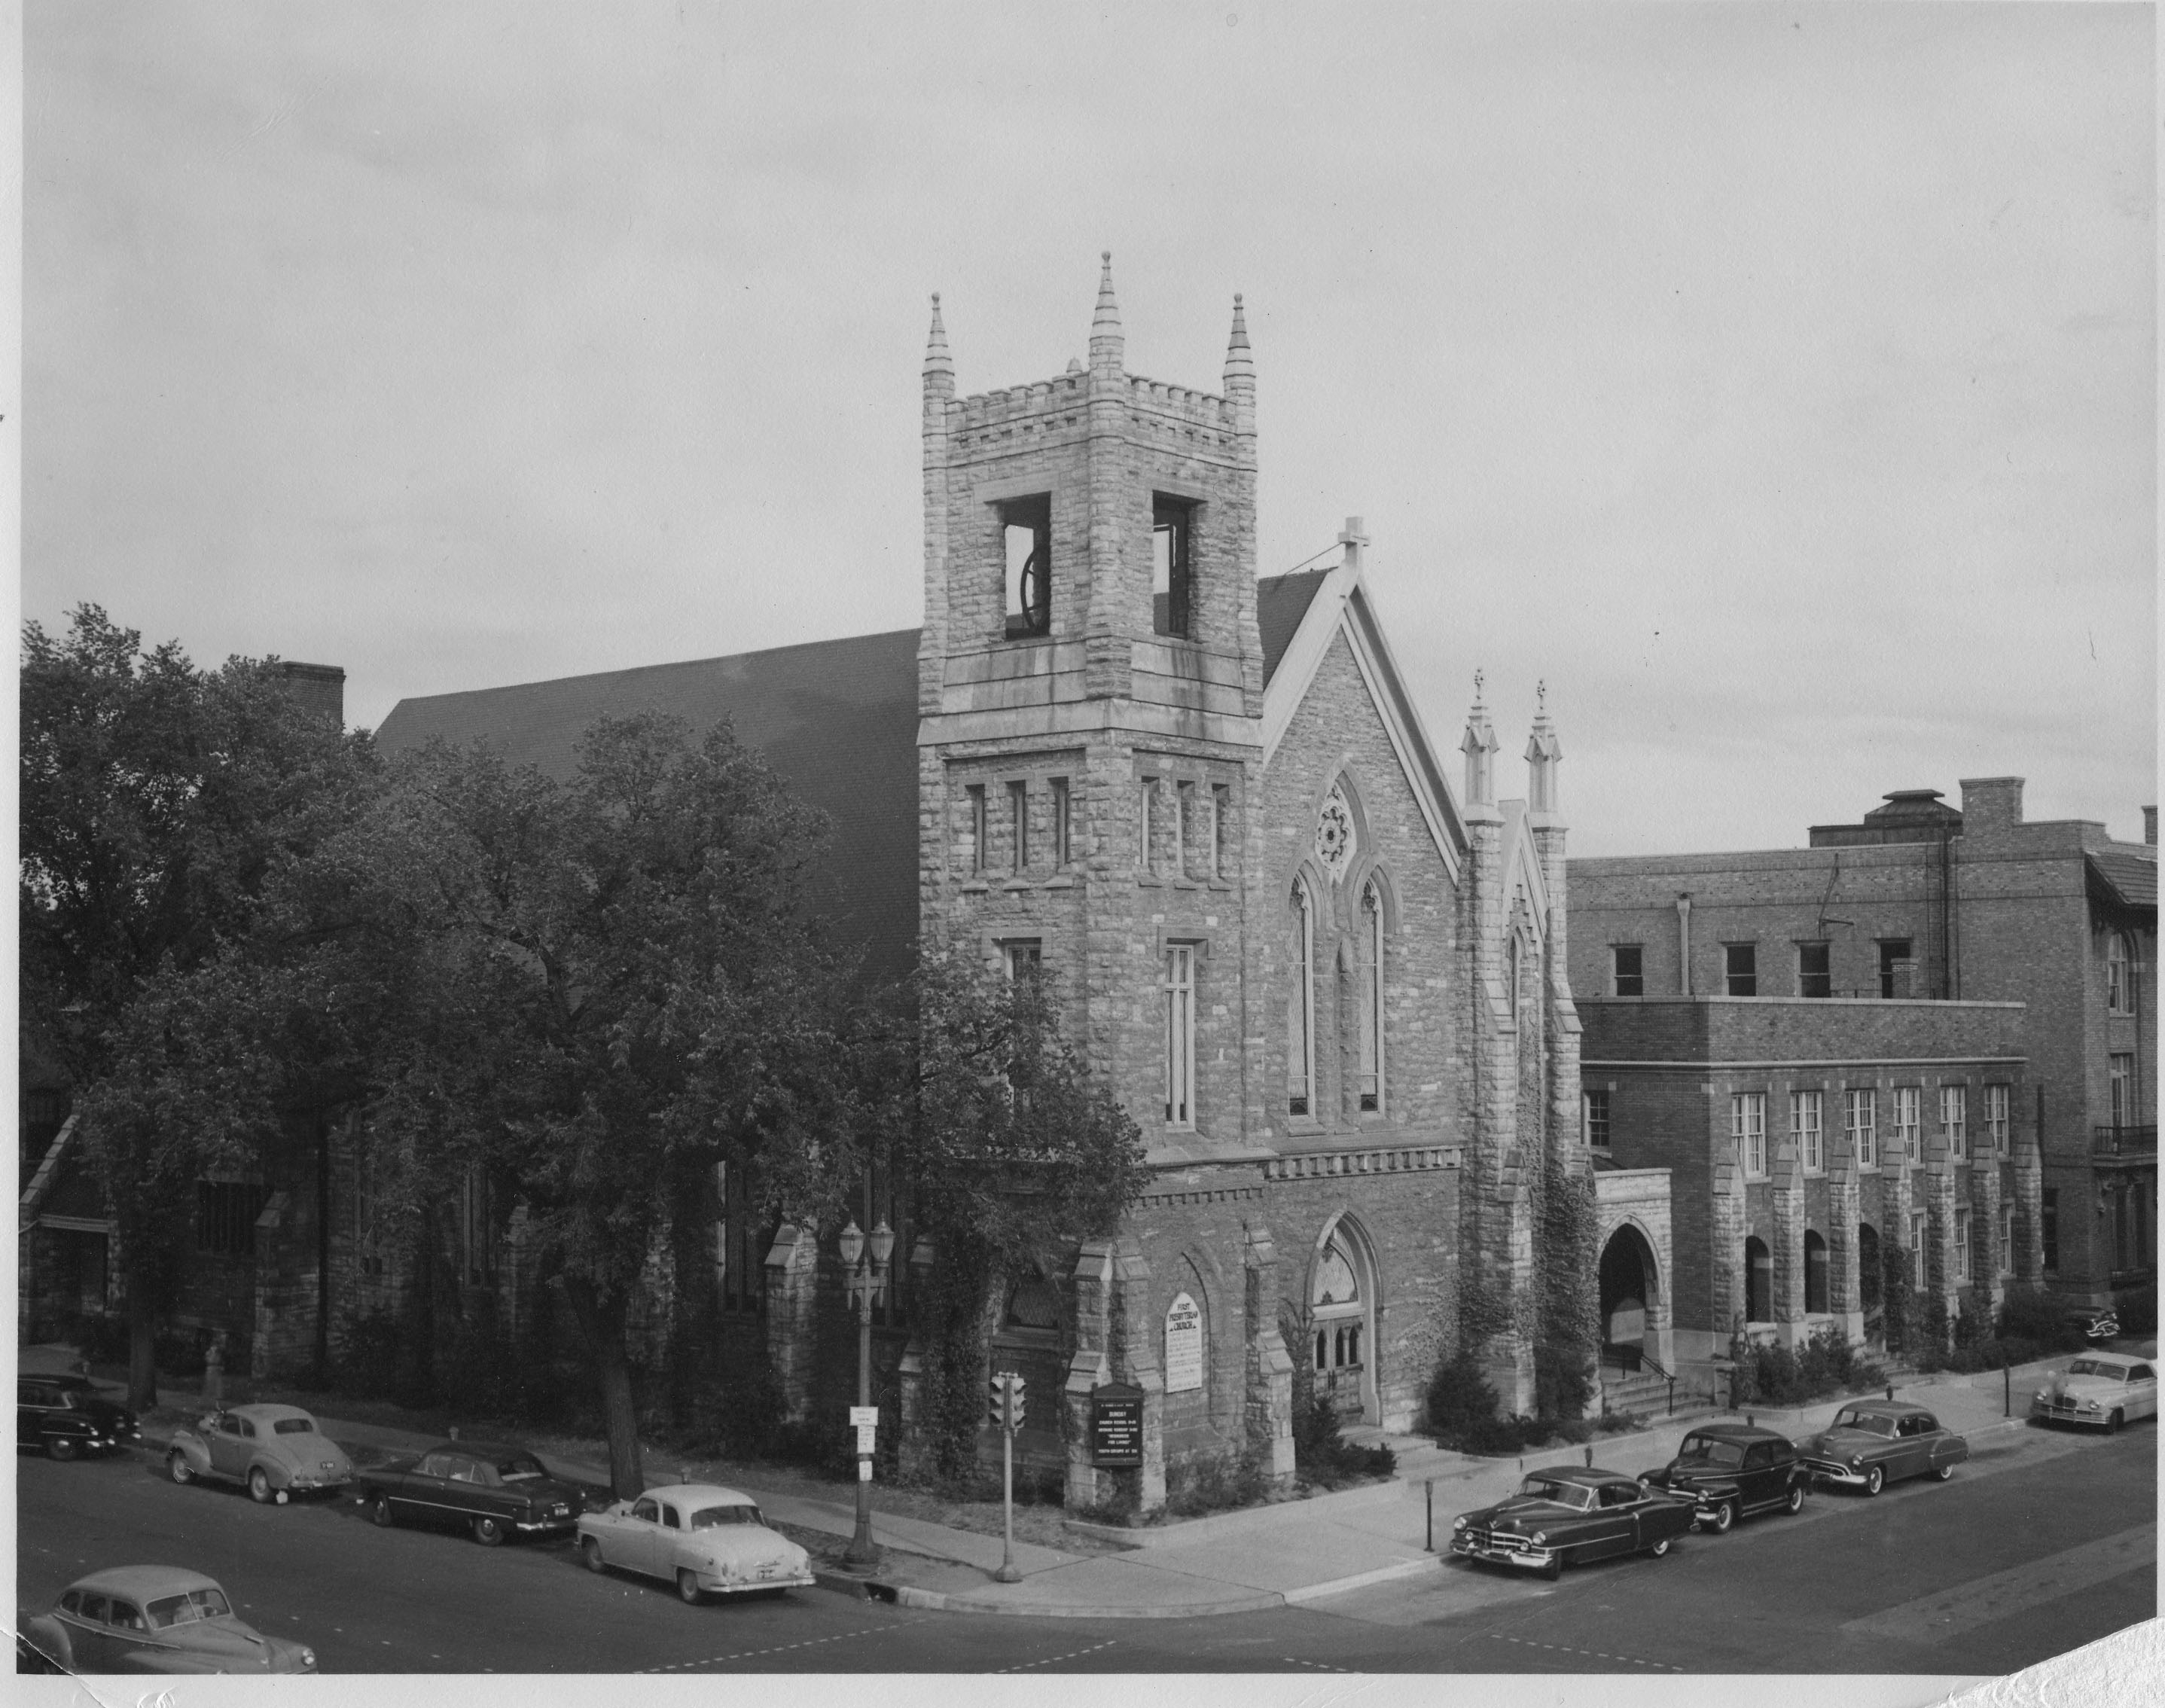 image of church in 1950